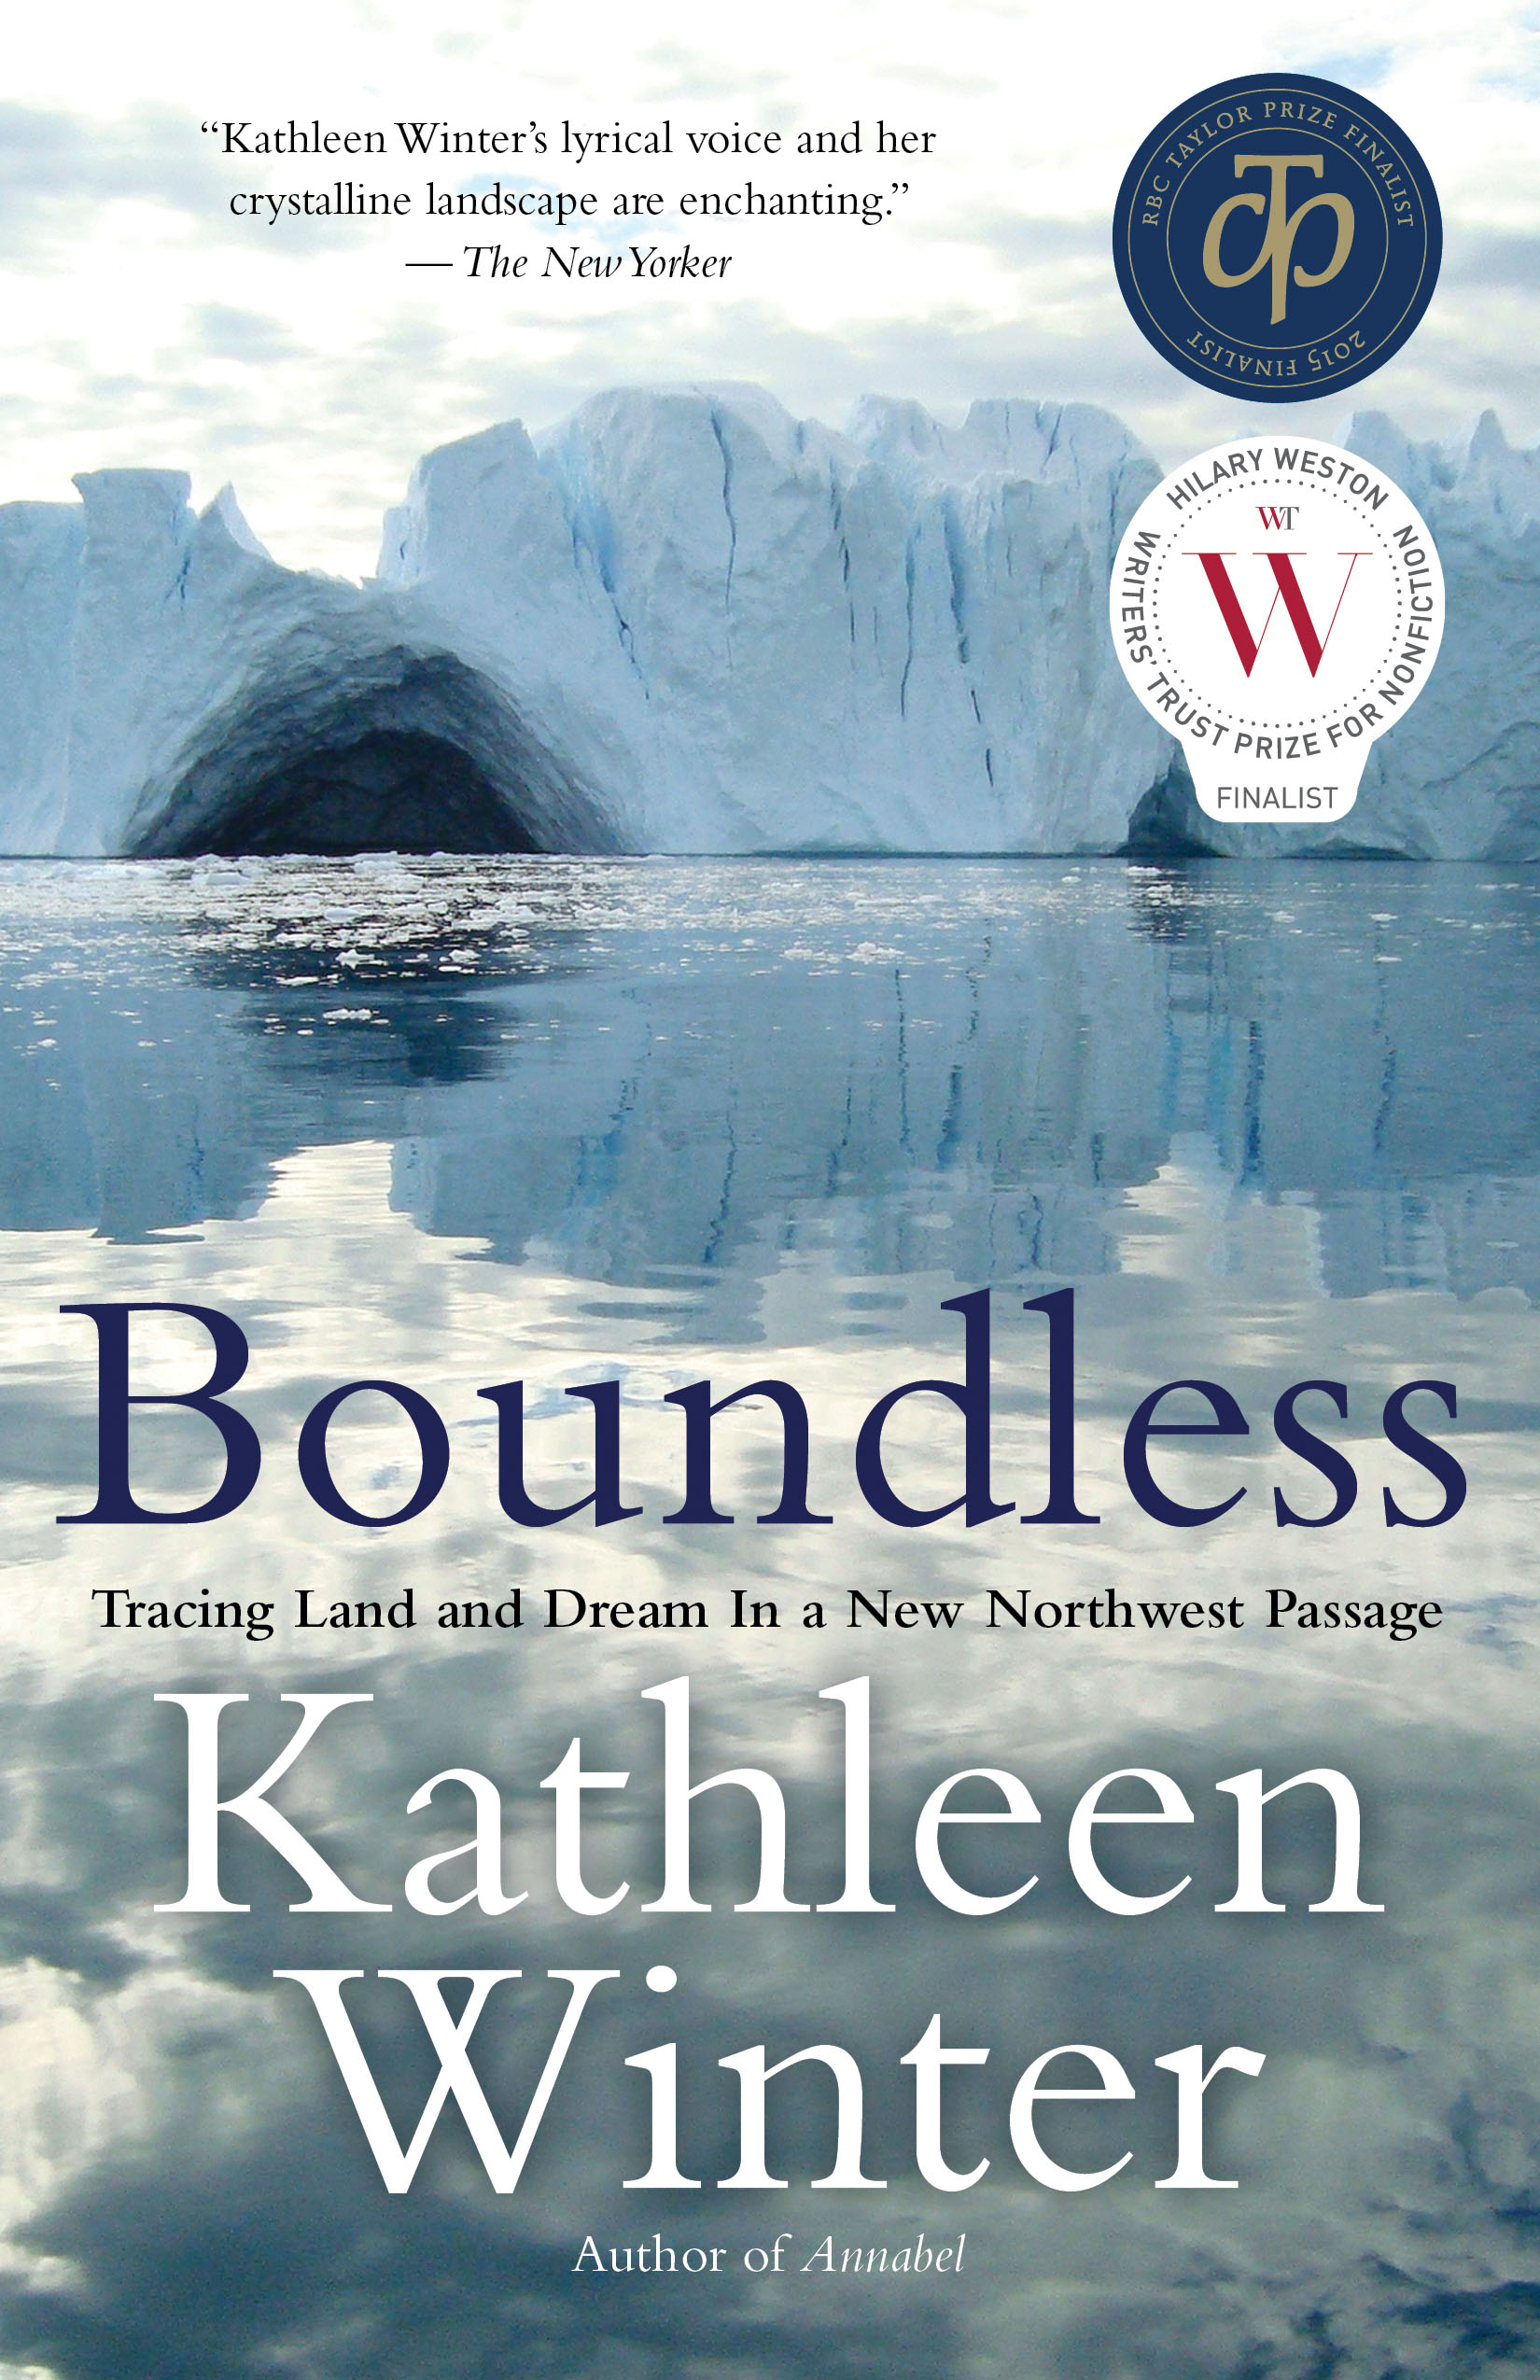 Boundless by Kathleen Winter, published by House of Anansi